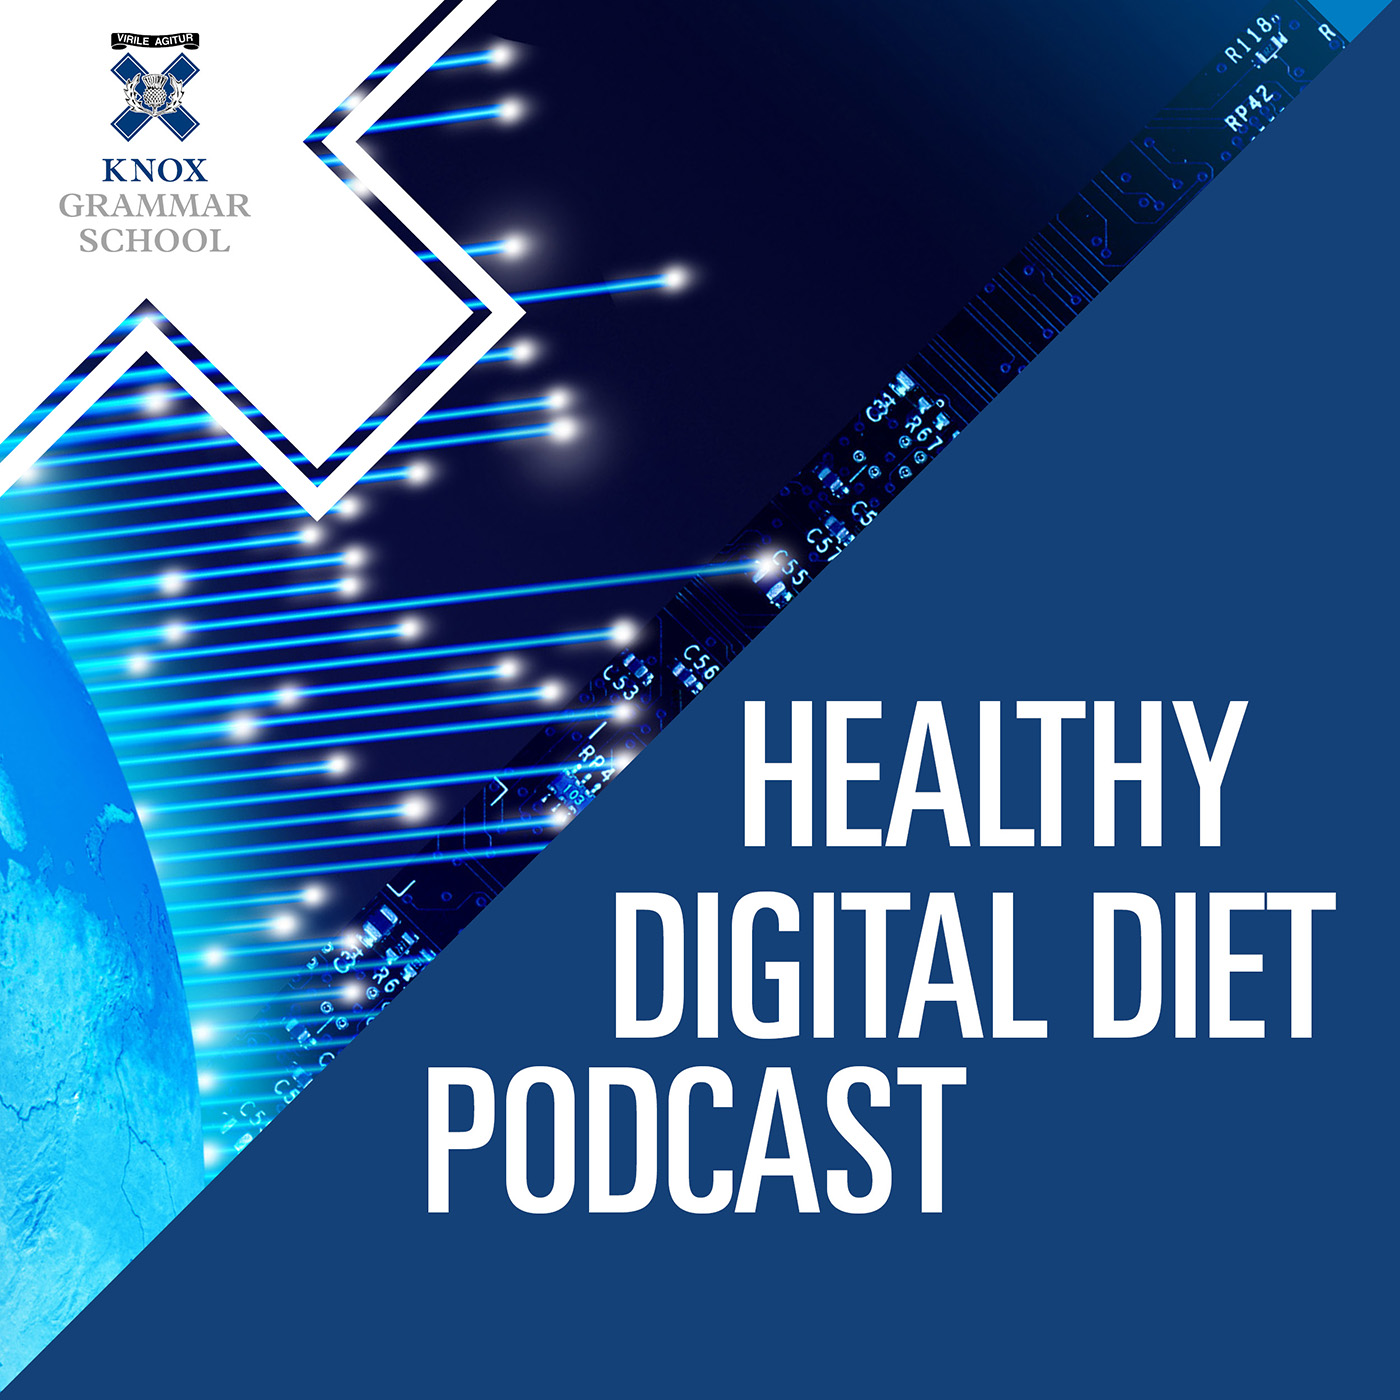 Healthy Digital Diet Podcast